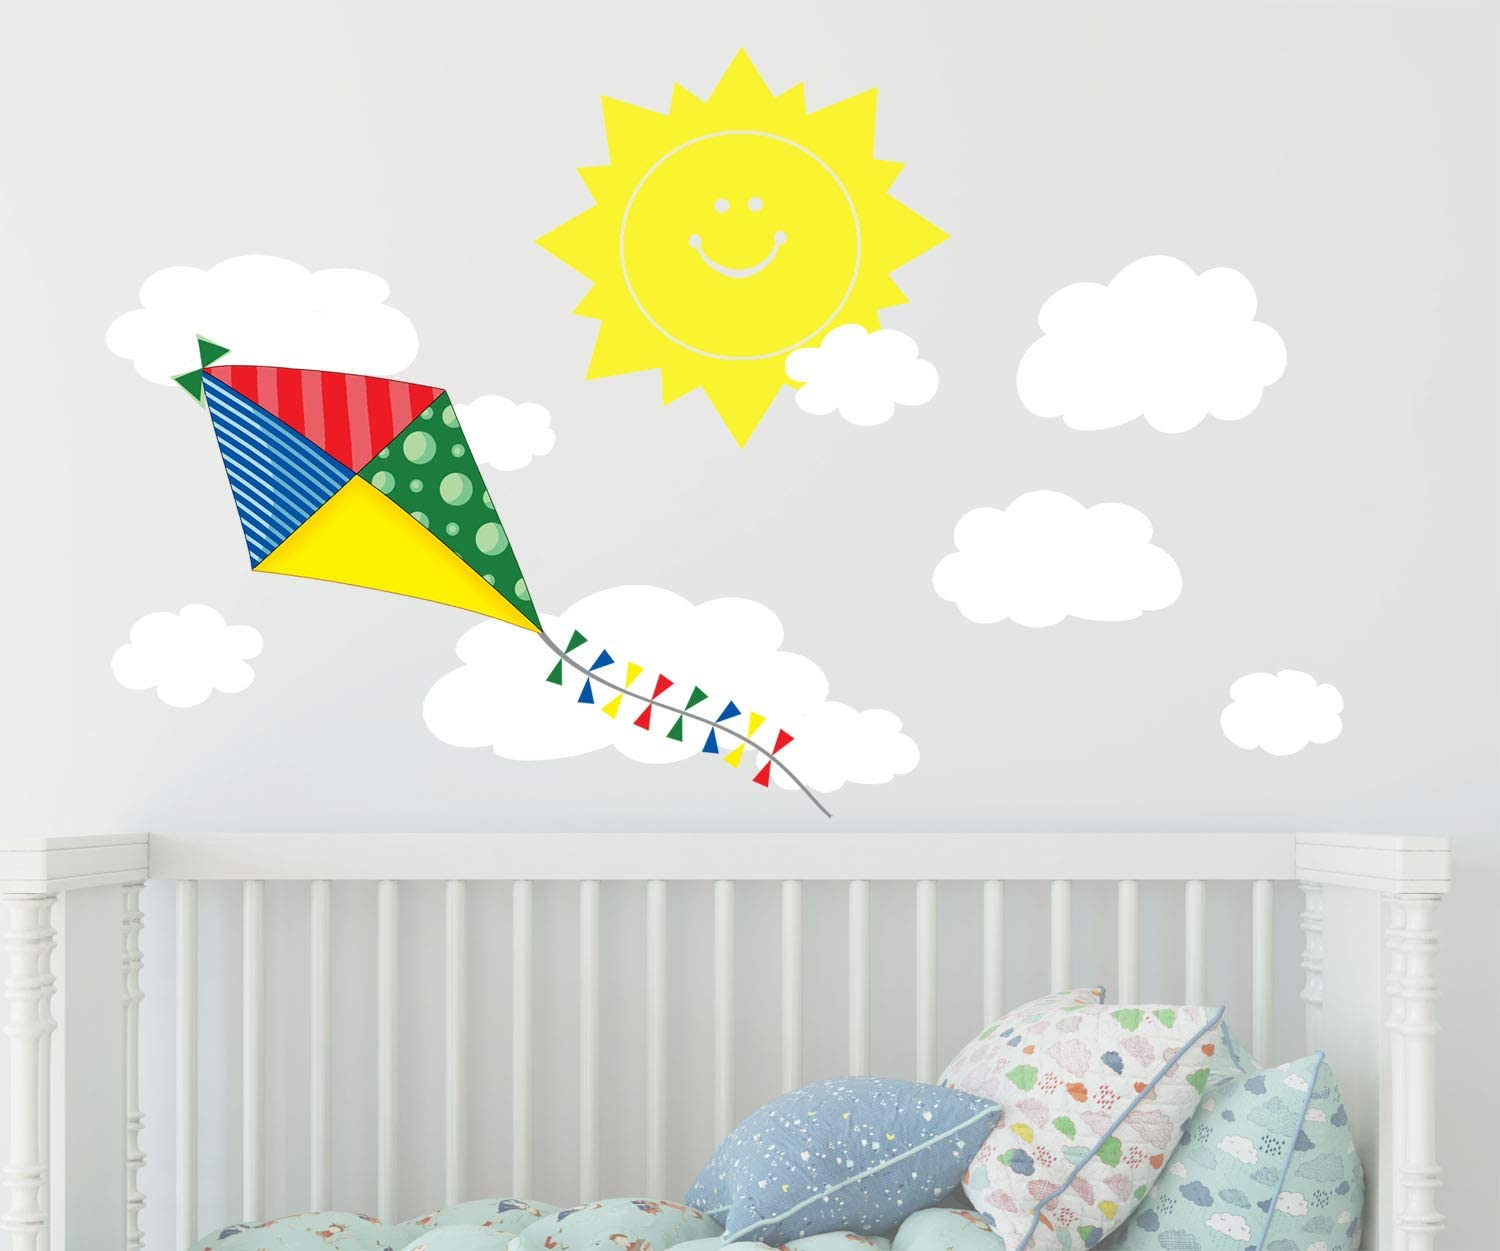 Amazon Com Create A Mural Preschool Wall Decor Kite Wall Decal With Happy Sun And Clouds Wall Sticker Decor Nursery Peel And Stick Removable Vinyl Kids Room Decoration Arts Crafts Sewing